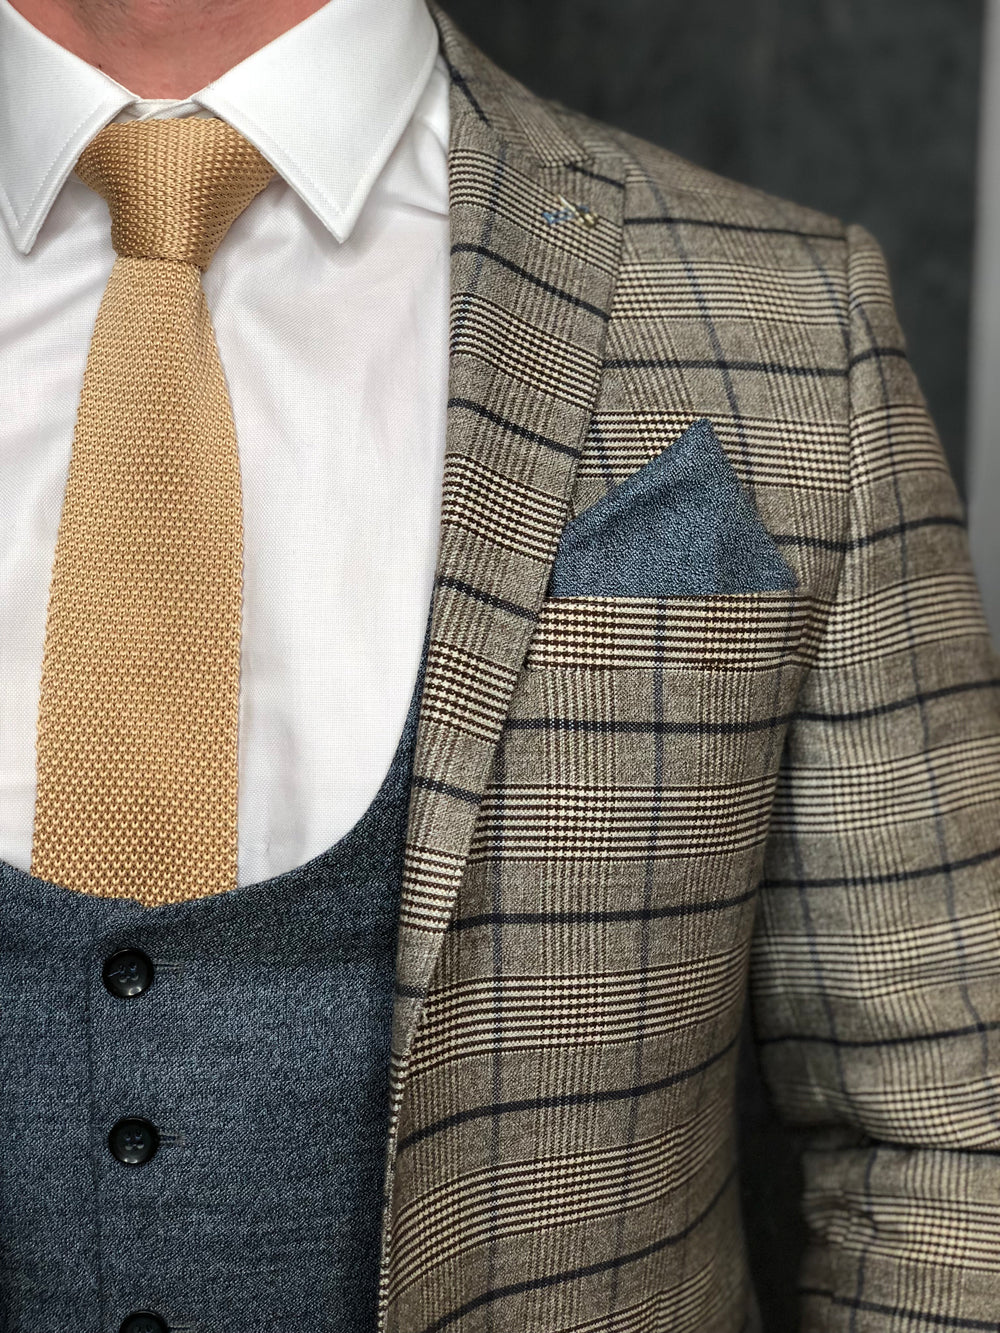 Champagne Tie and Textured Pocket Square